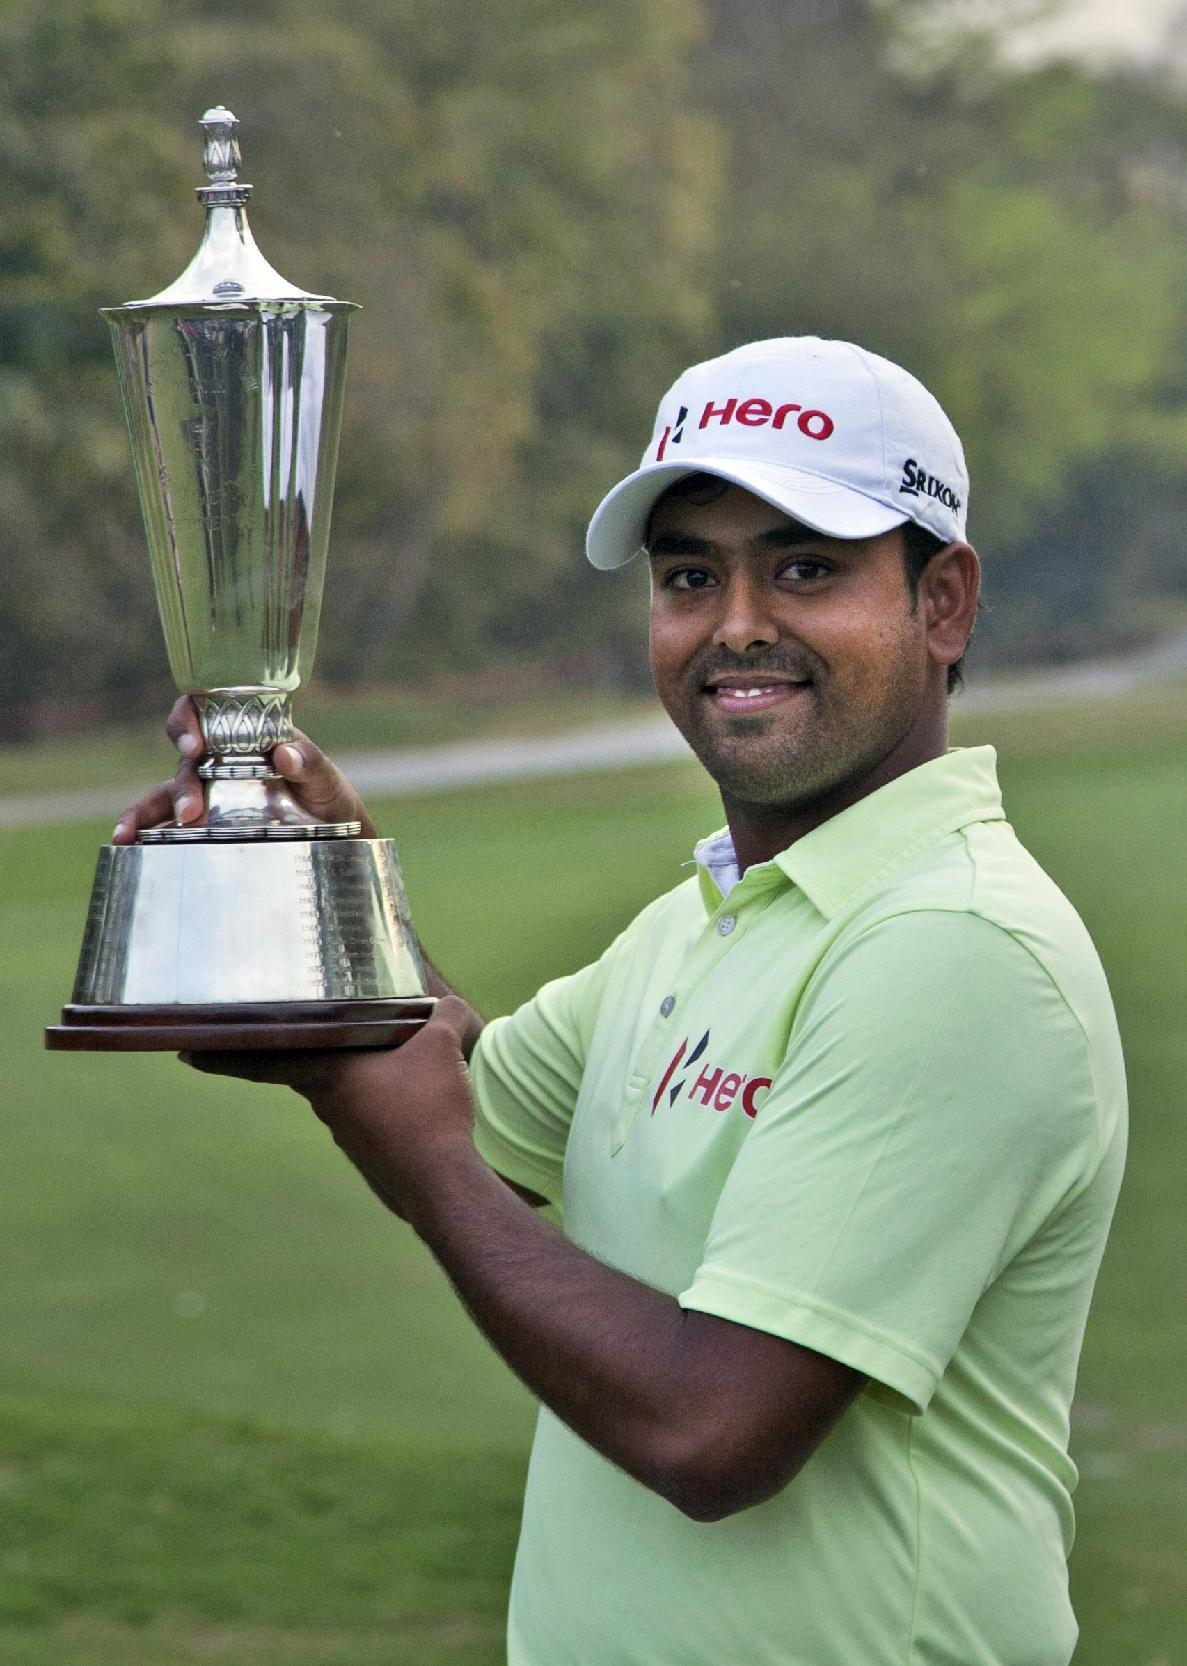 A year after meeting Tiger, Indian golfer on the rise